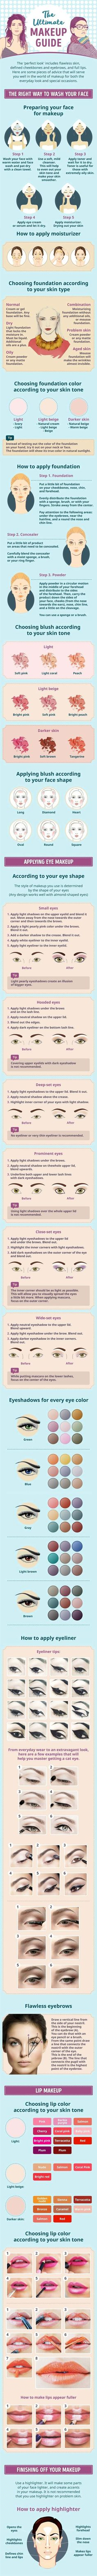 Best Makeup Tutorials for Teens -The Ultimate Makeup Guide You Can't Live Without - Easy Makeup Ideas for Beginners - Step by Step Tutorials for Foundation, Eye Shadow, Lipstick, Cheeks, Contour, Eyebrows and Eyes - Awesome Makeup Hacks and Tips for Simple DIY Beauty - Day and Evening Looks http://diyprojectsforteens.com/makeup-tutorials-teens: